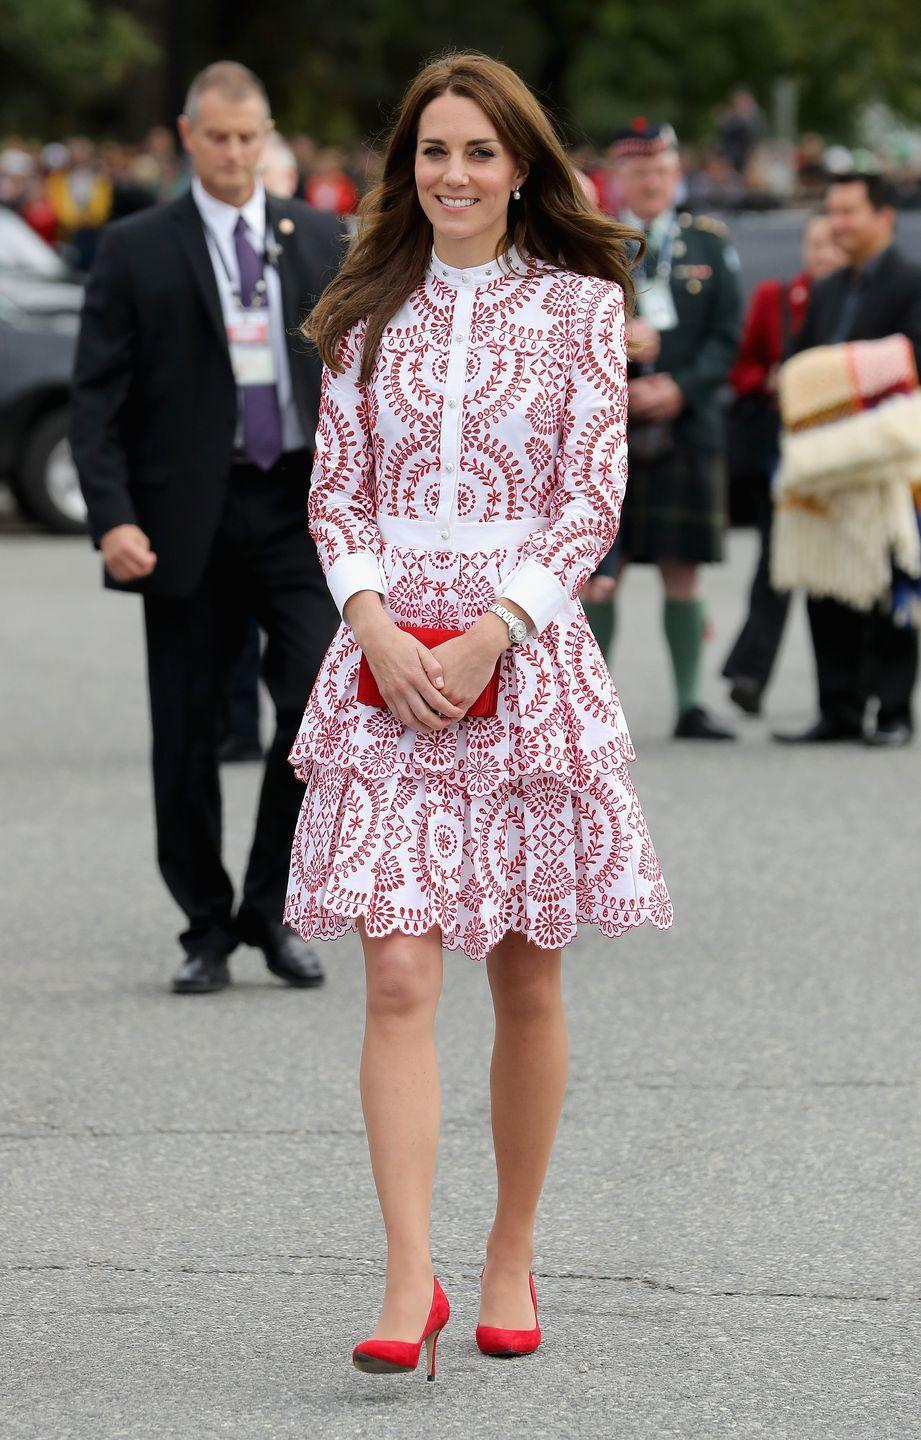 <p>Kate normally chooses solid colors from the brand, but made an exception for a 2016 trip to Canada. She chose this red and white eyelet, embroidered dress to attend an event for the Canadian Coast Guard and Vancouver First Responders. </p>